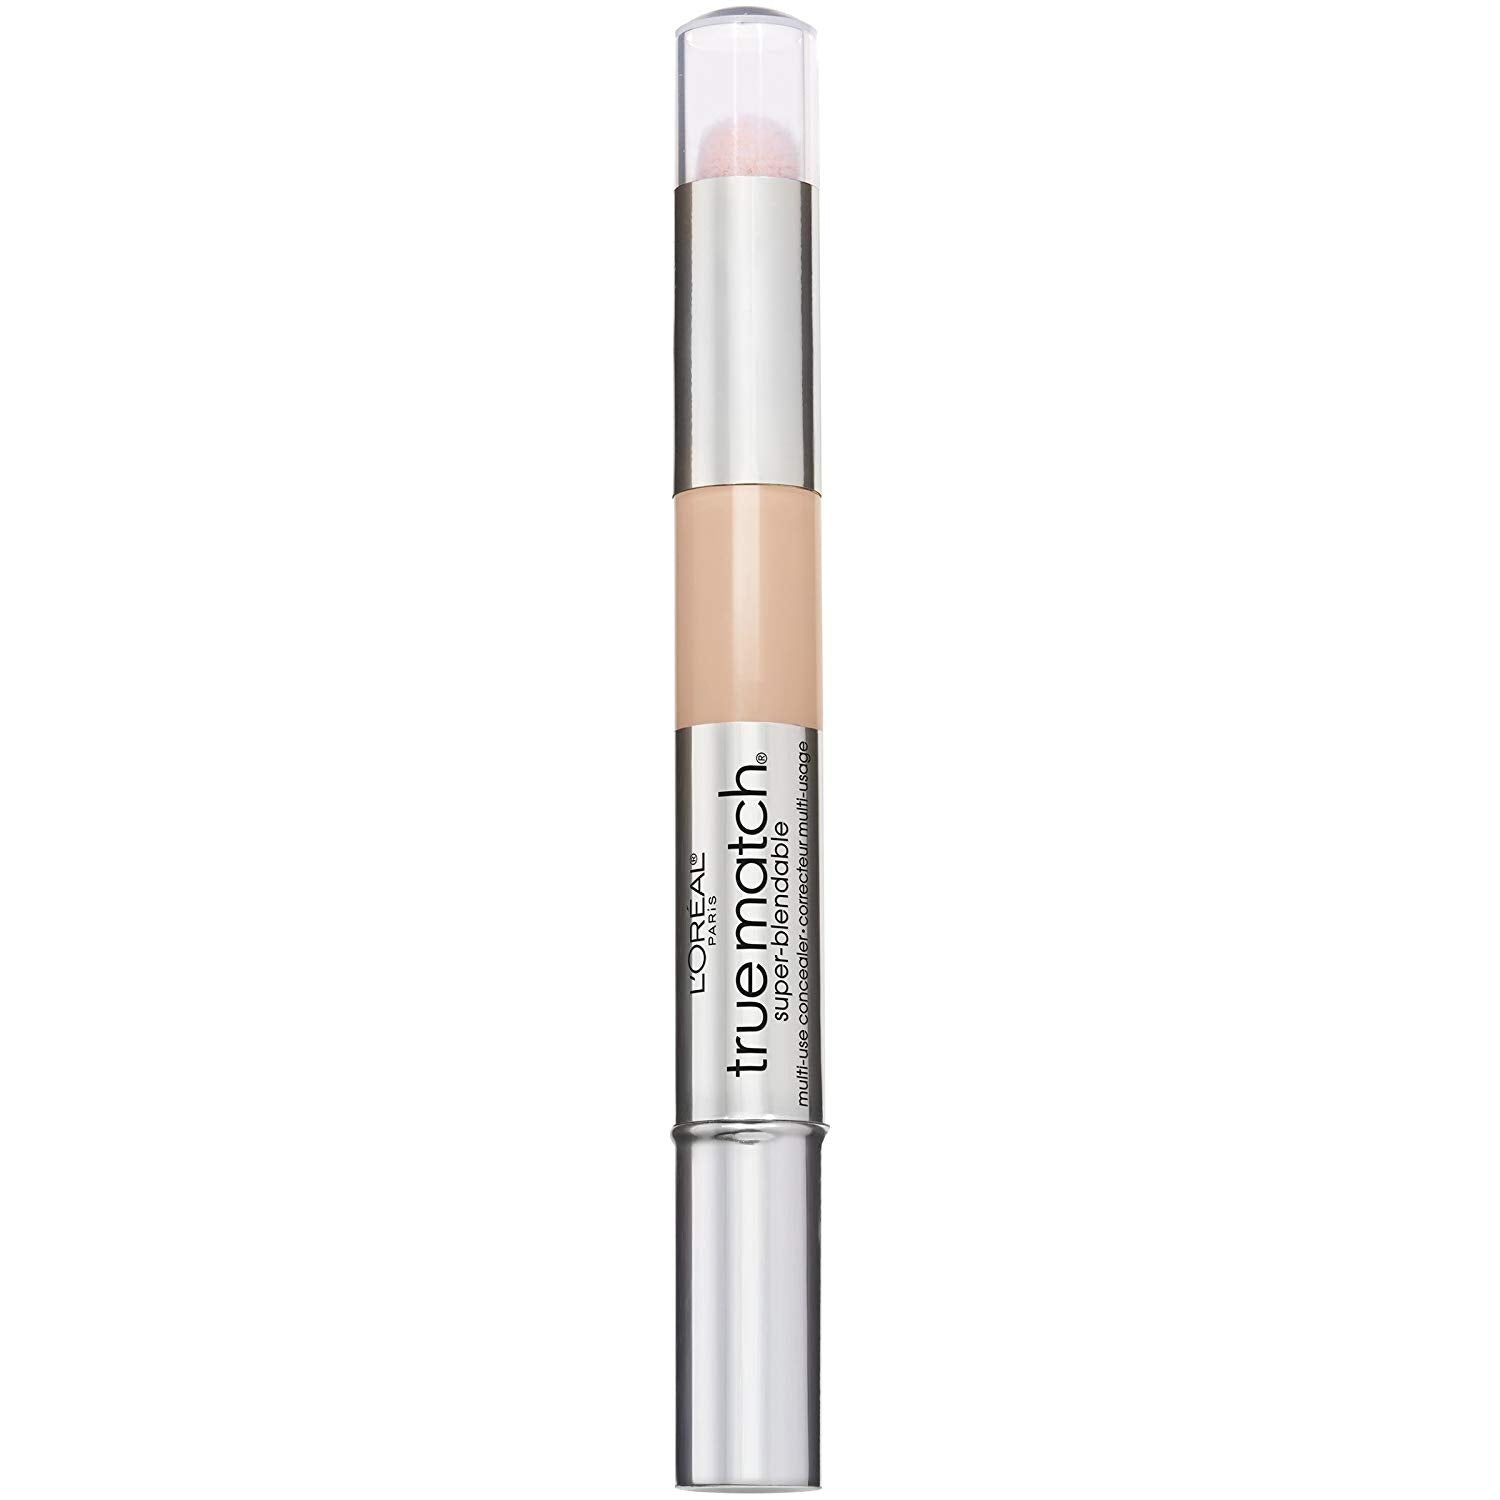 L'Oreal True Match Super-Blendable Multi-Use Concealer